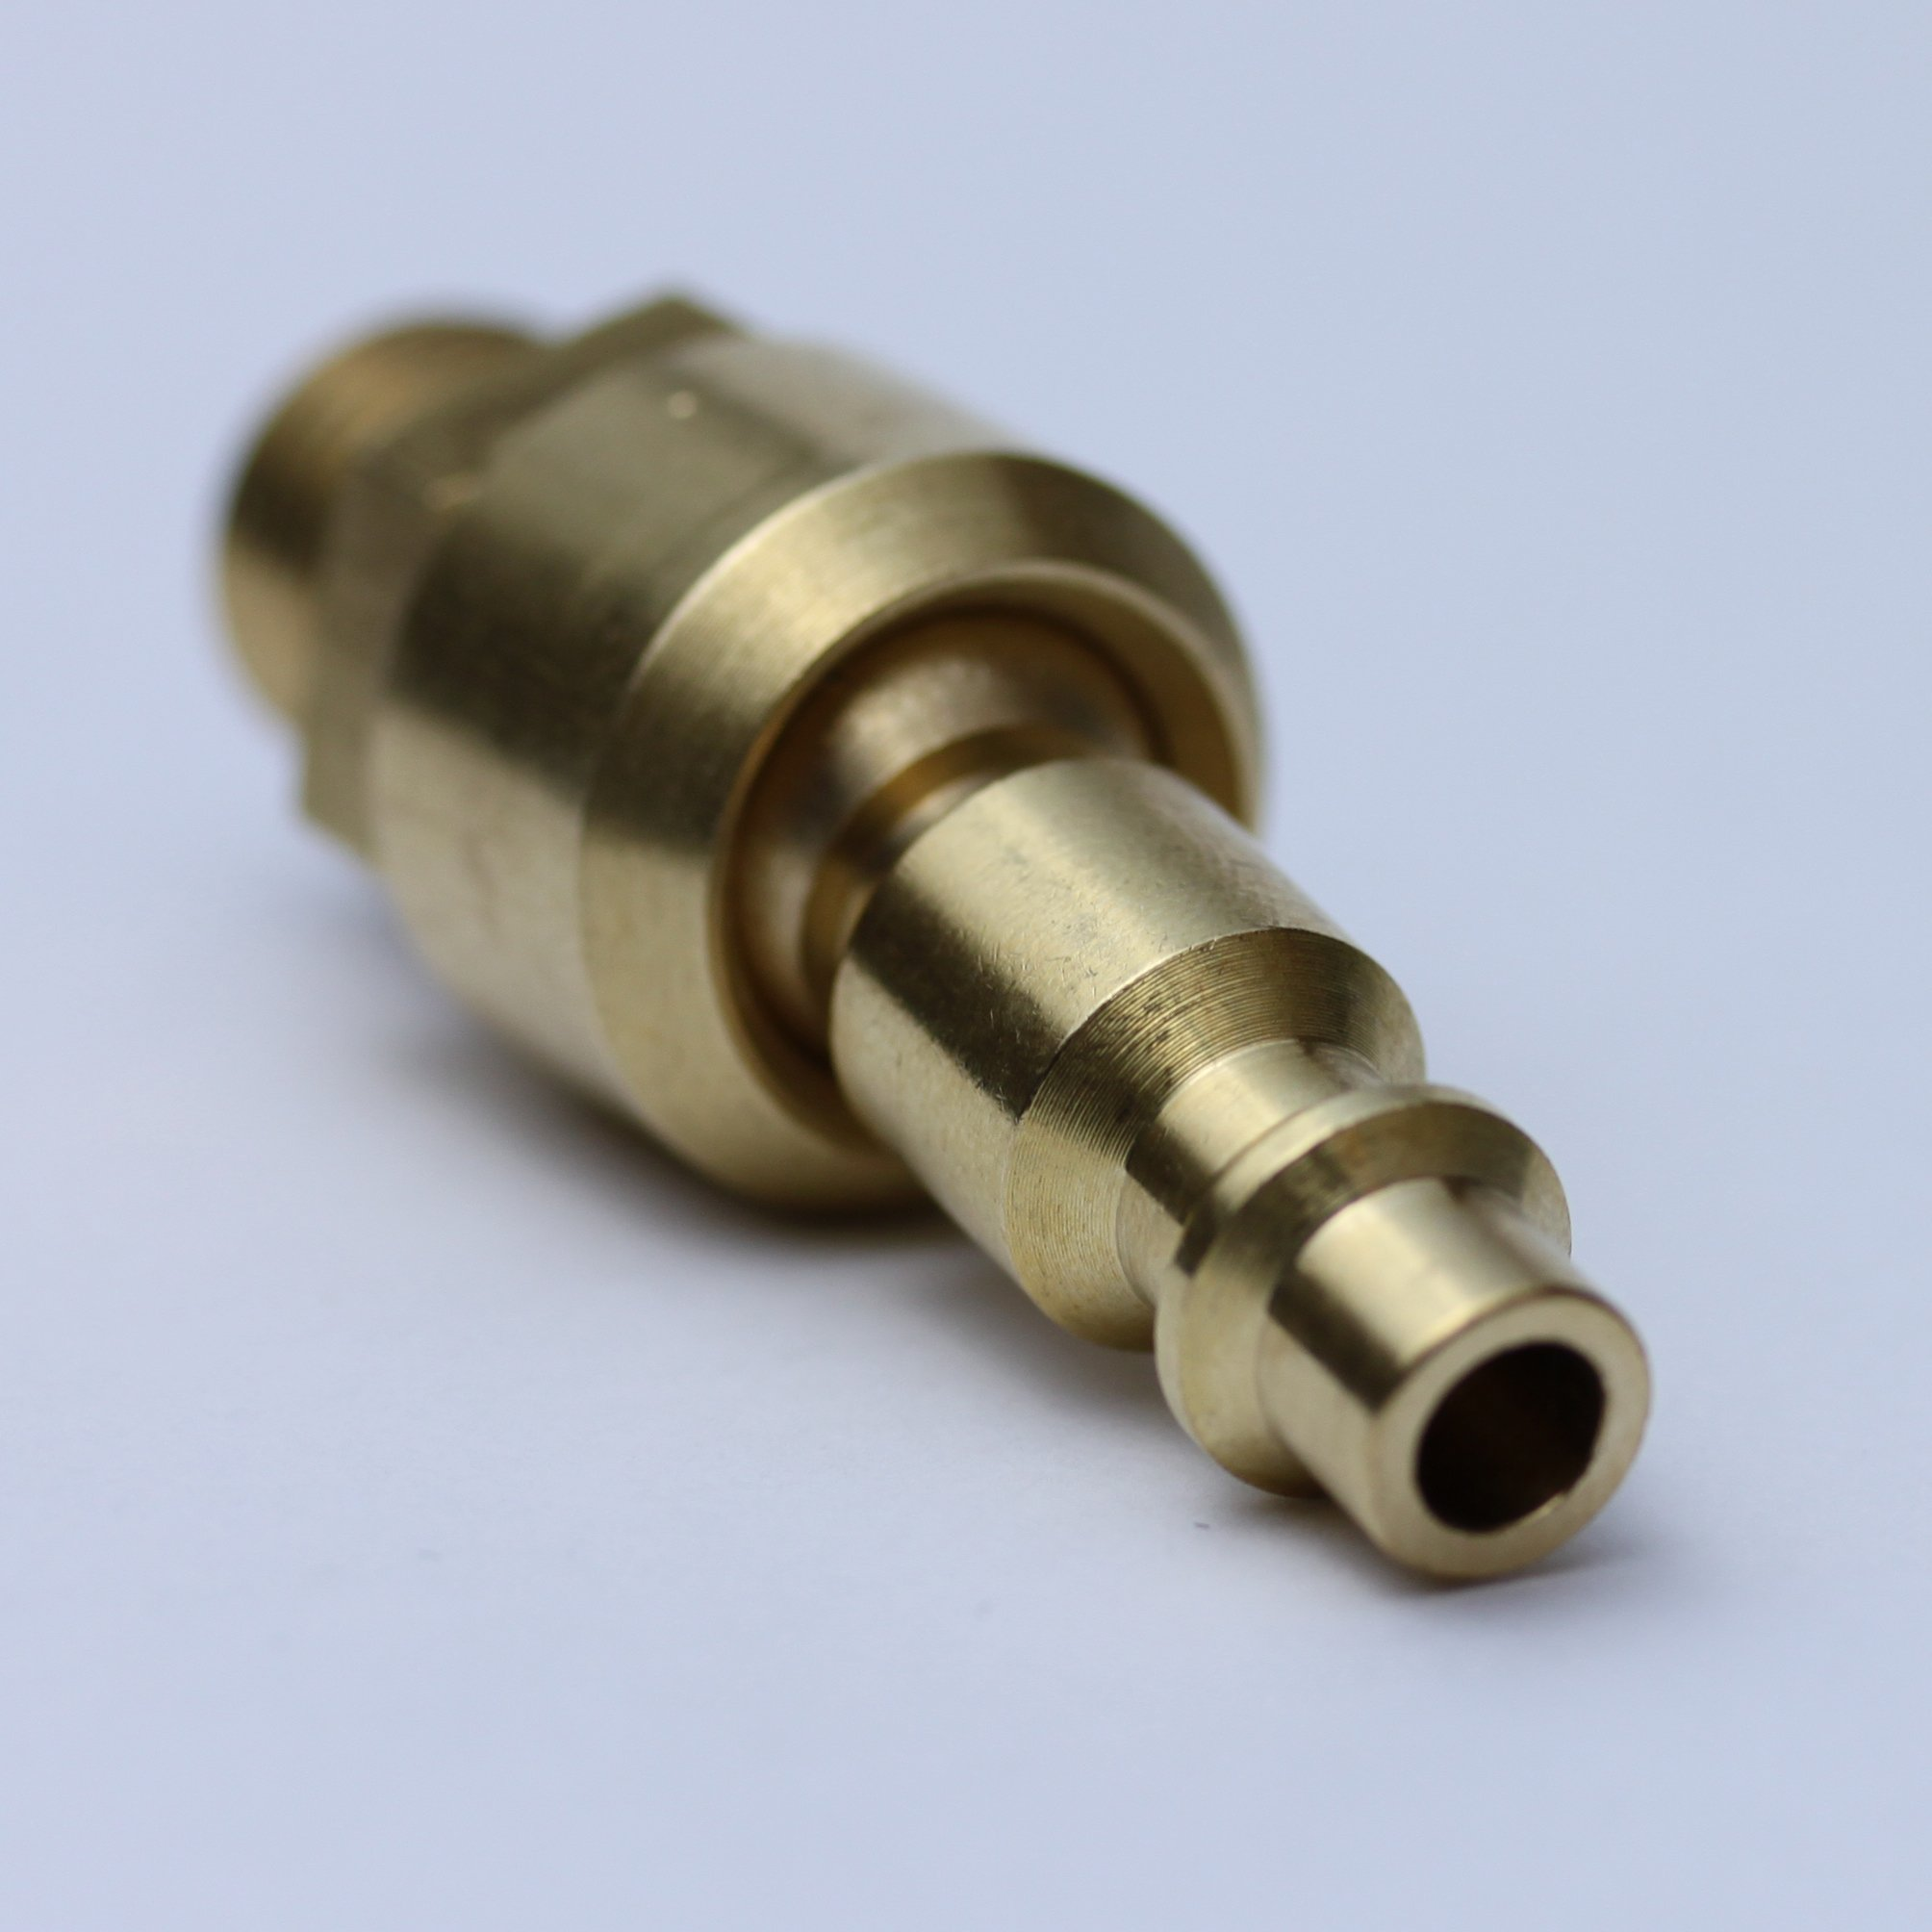 Uffy Industrial Style Ball Swivel 1//4 Connect NPT Male Quick Air Tool M Fitting